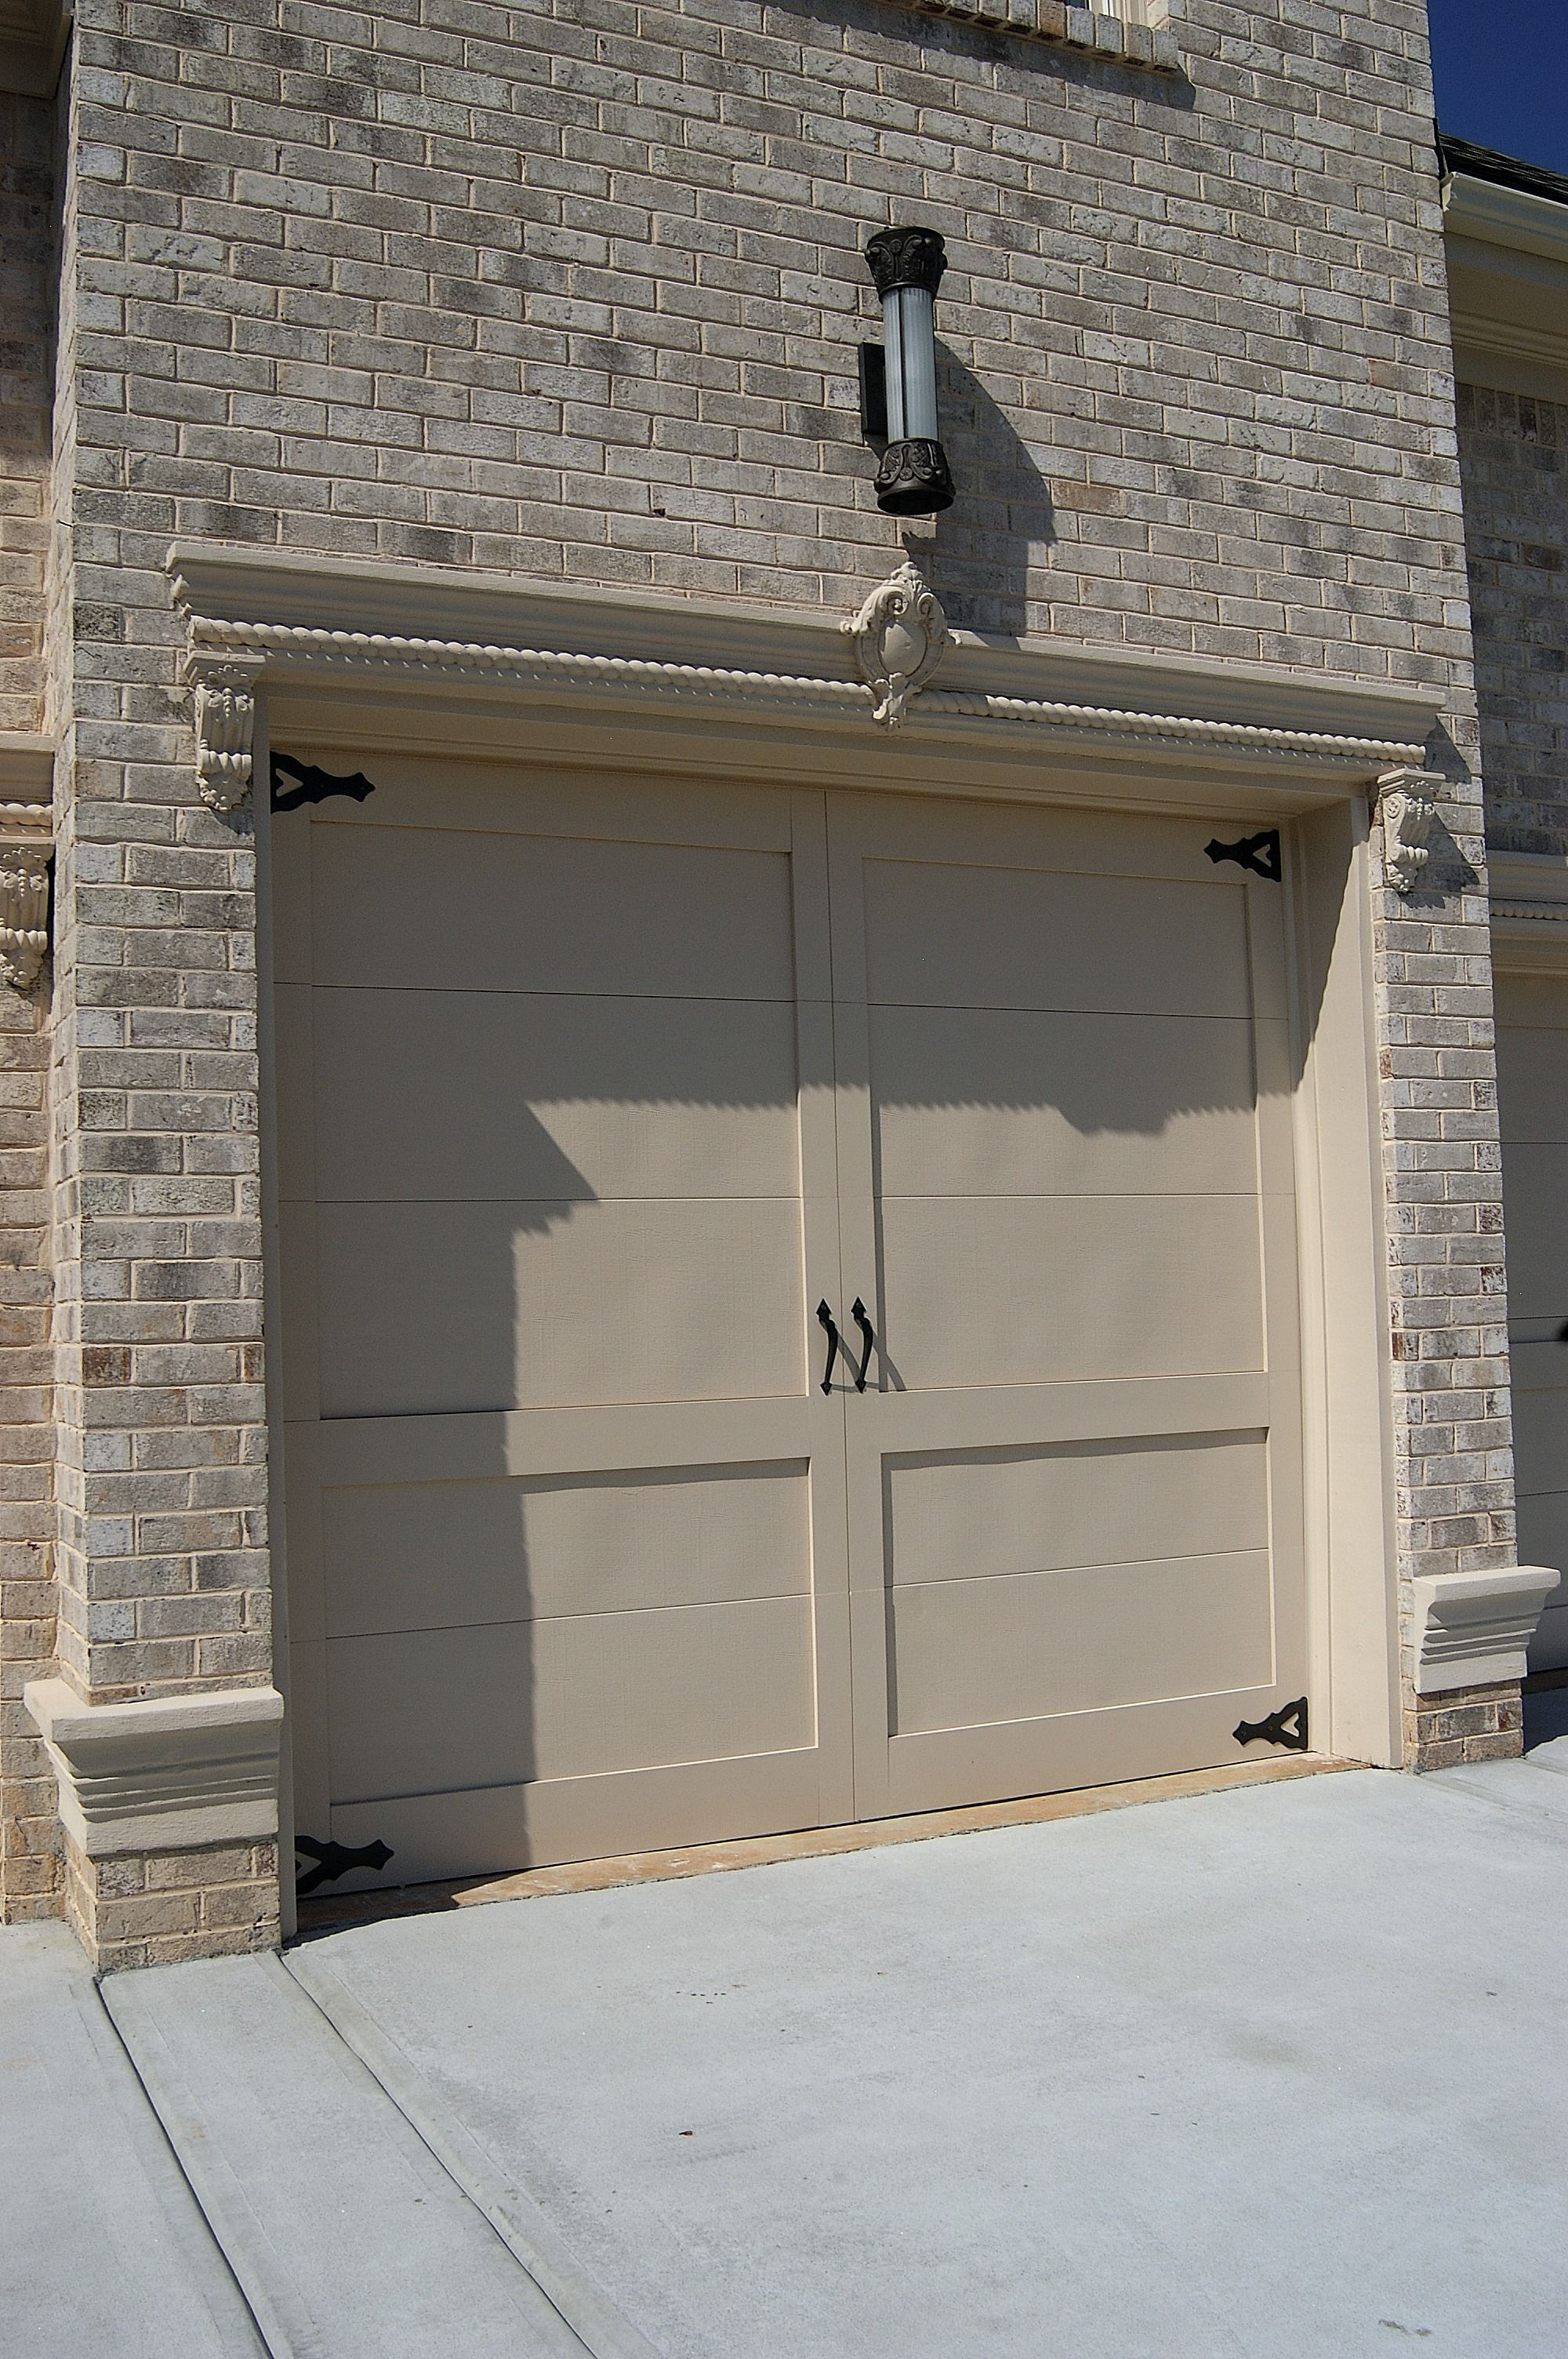 Neutral Colors Are Going To Be Hot In 2014 Perhaps It Is The Right Blend For Your New Garage Doo Garage Doors Brick Siding Bathroom Remodel Estimate